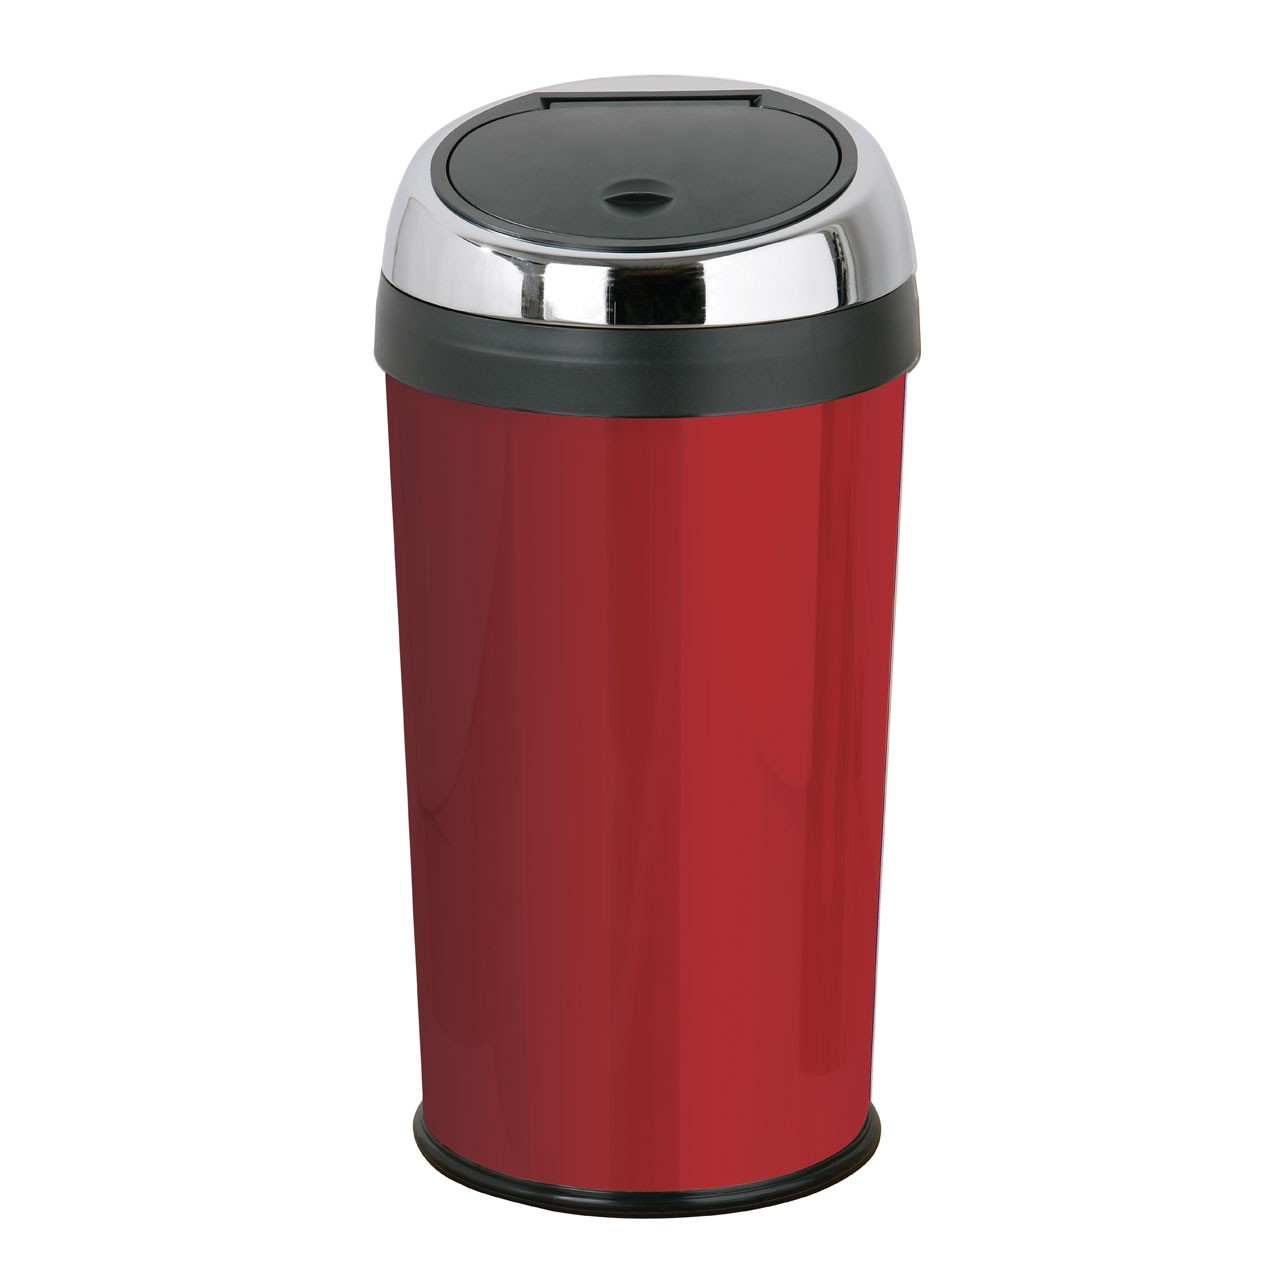 Set Of 2 30Ltr Touch Top Bins Red Enamel Made Of Stainless Steel